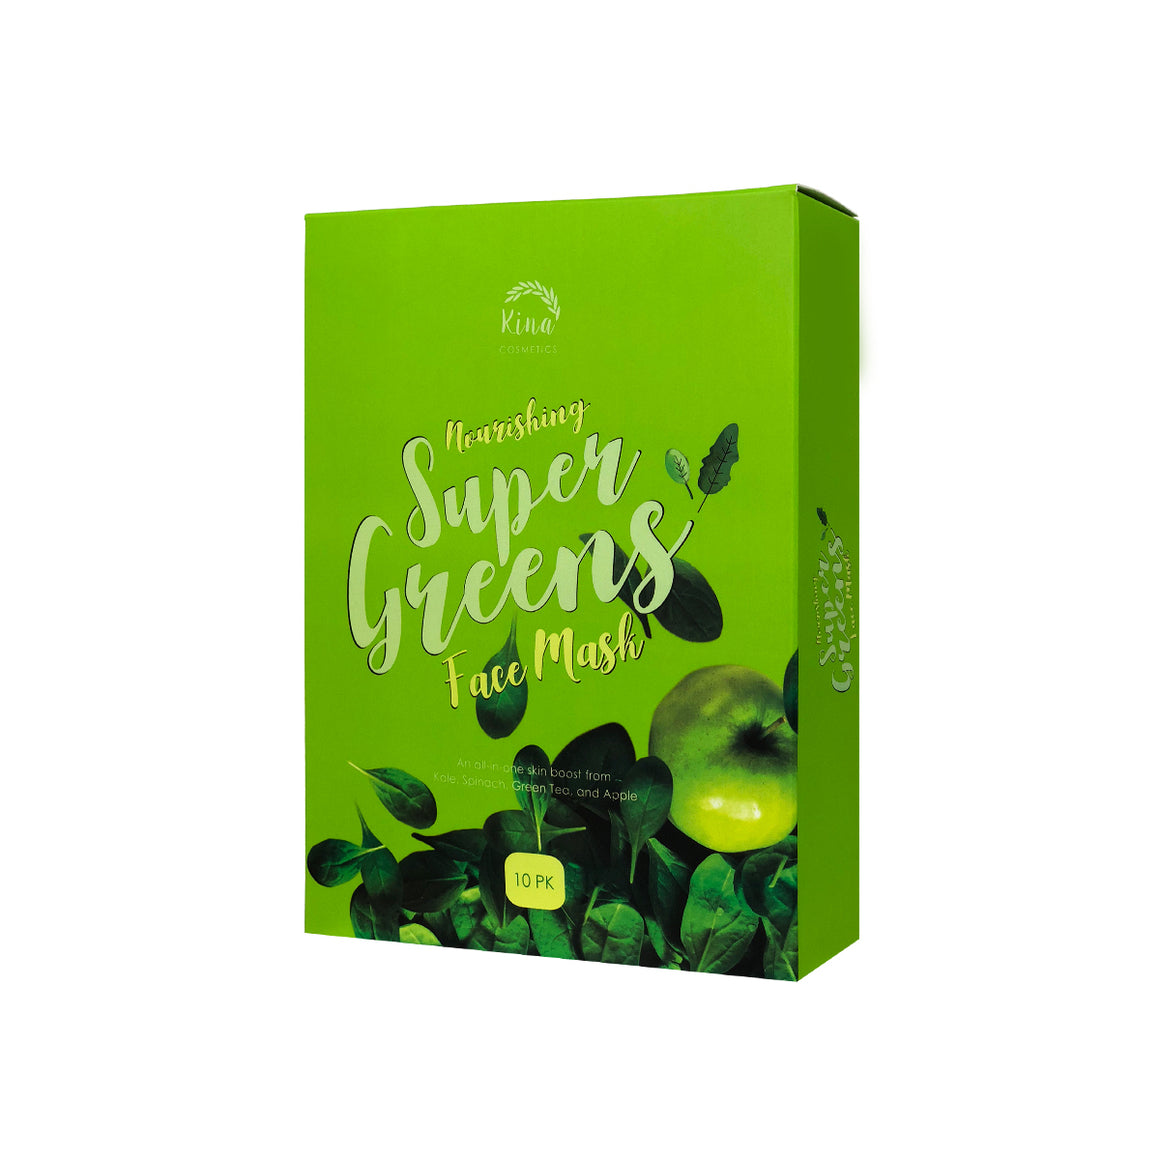 Super Greens Superfood Mask